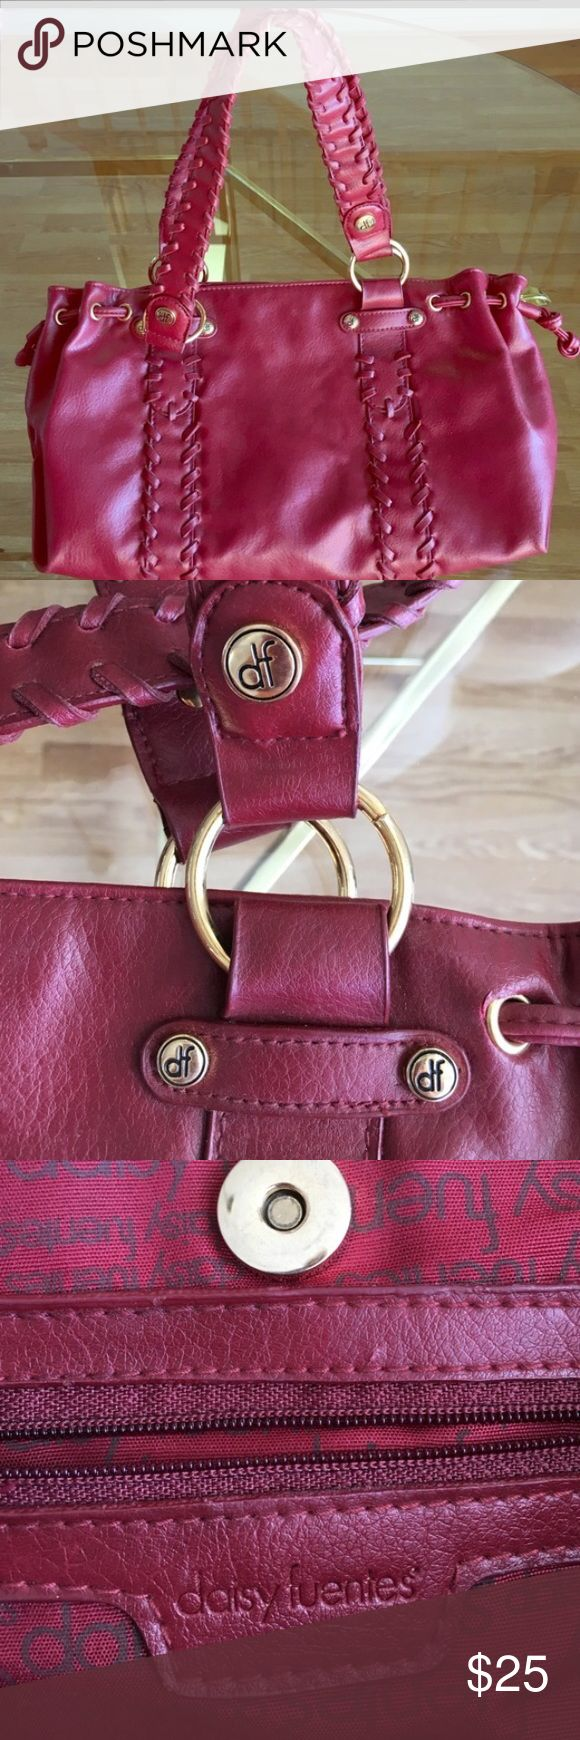 Cute red Daisy Fuentes handbag. No damage. Cute red Daisy Fuentes handbag. No damage. Measure 15 inches in width by 10 inches in height. Daisy Fuentes Bags Totes